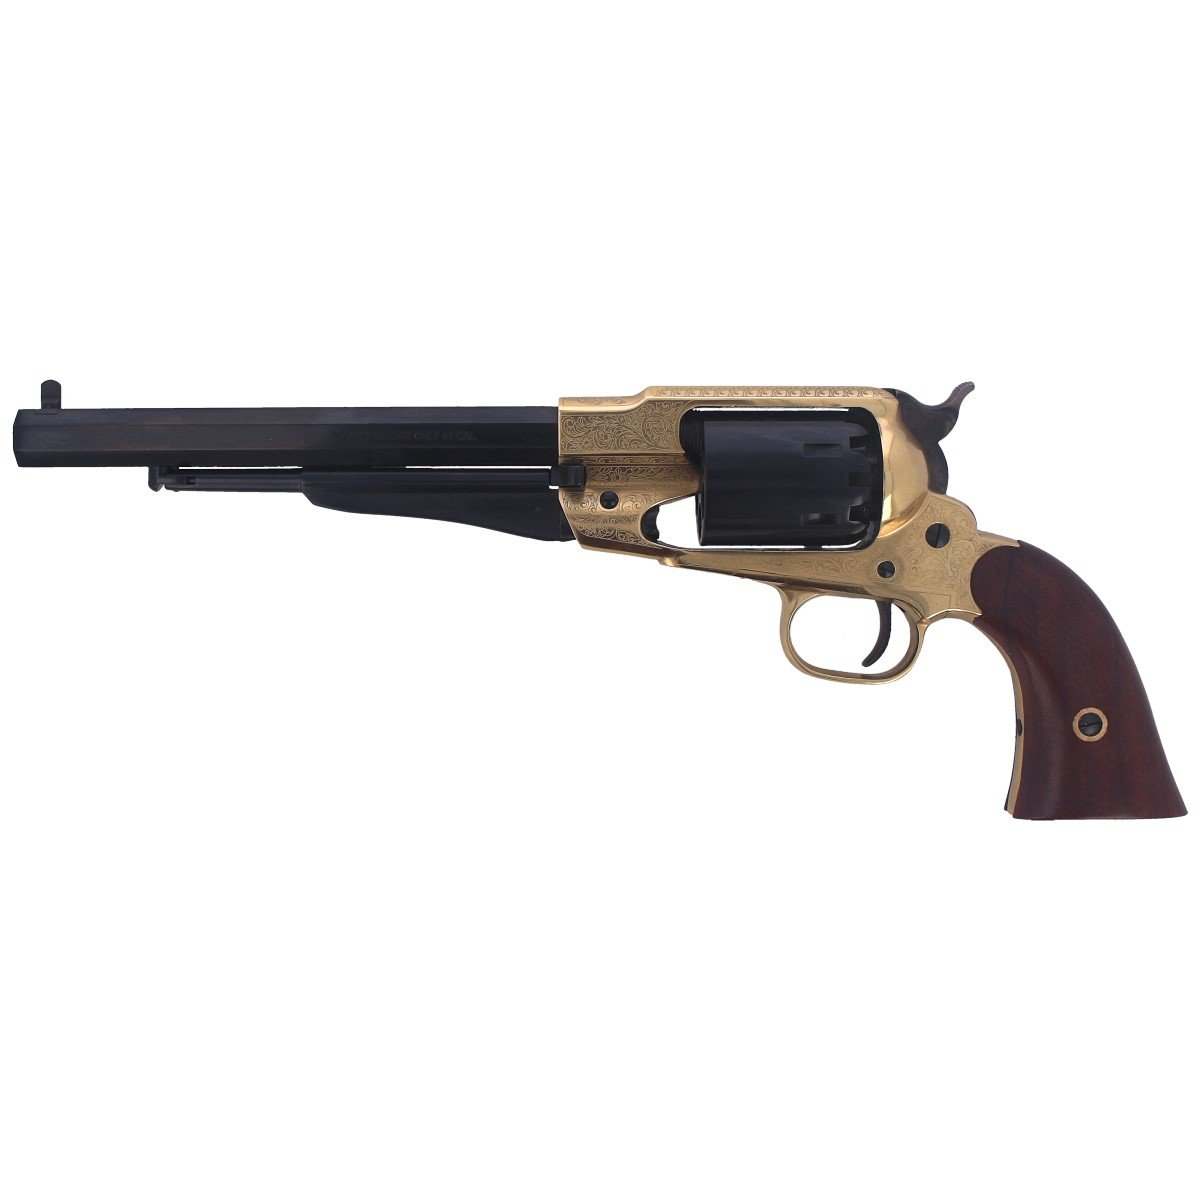 "Rewolwer Pietta 1858 Remington Texas 8"" kal.44 RGB44DL"